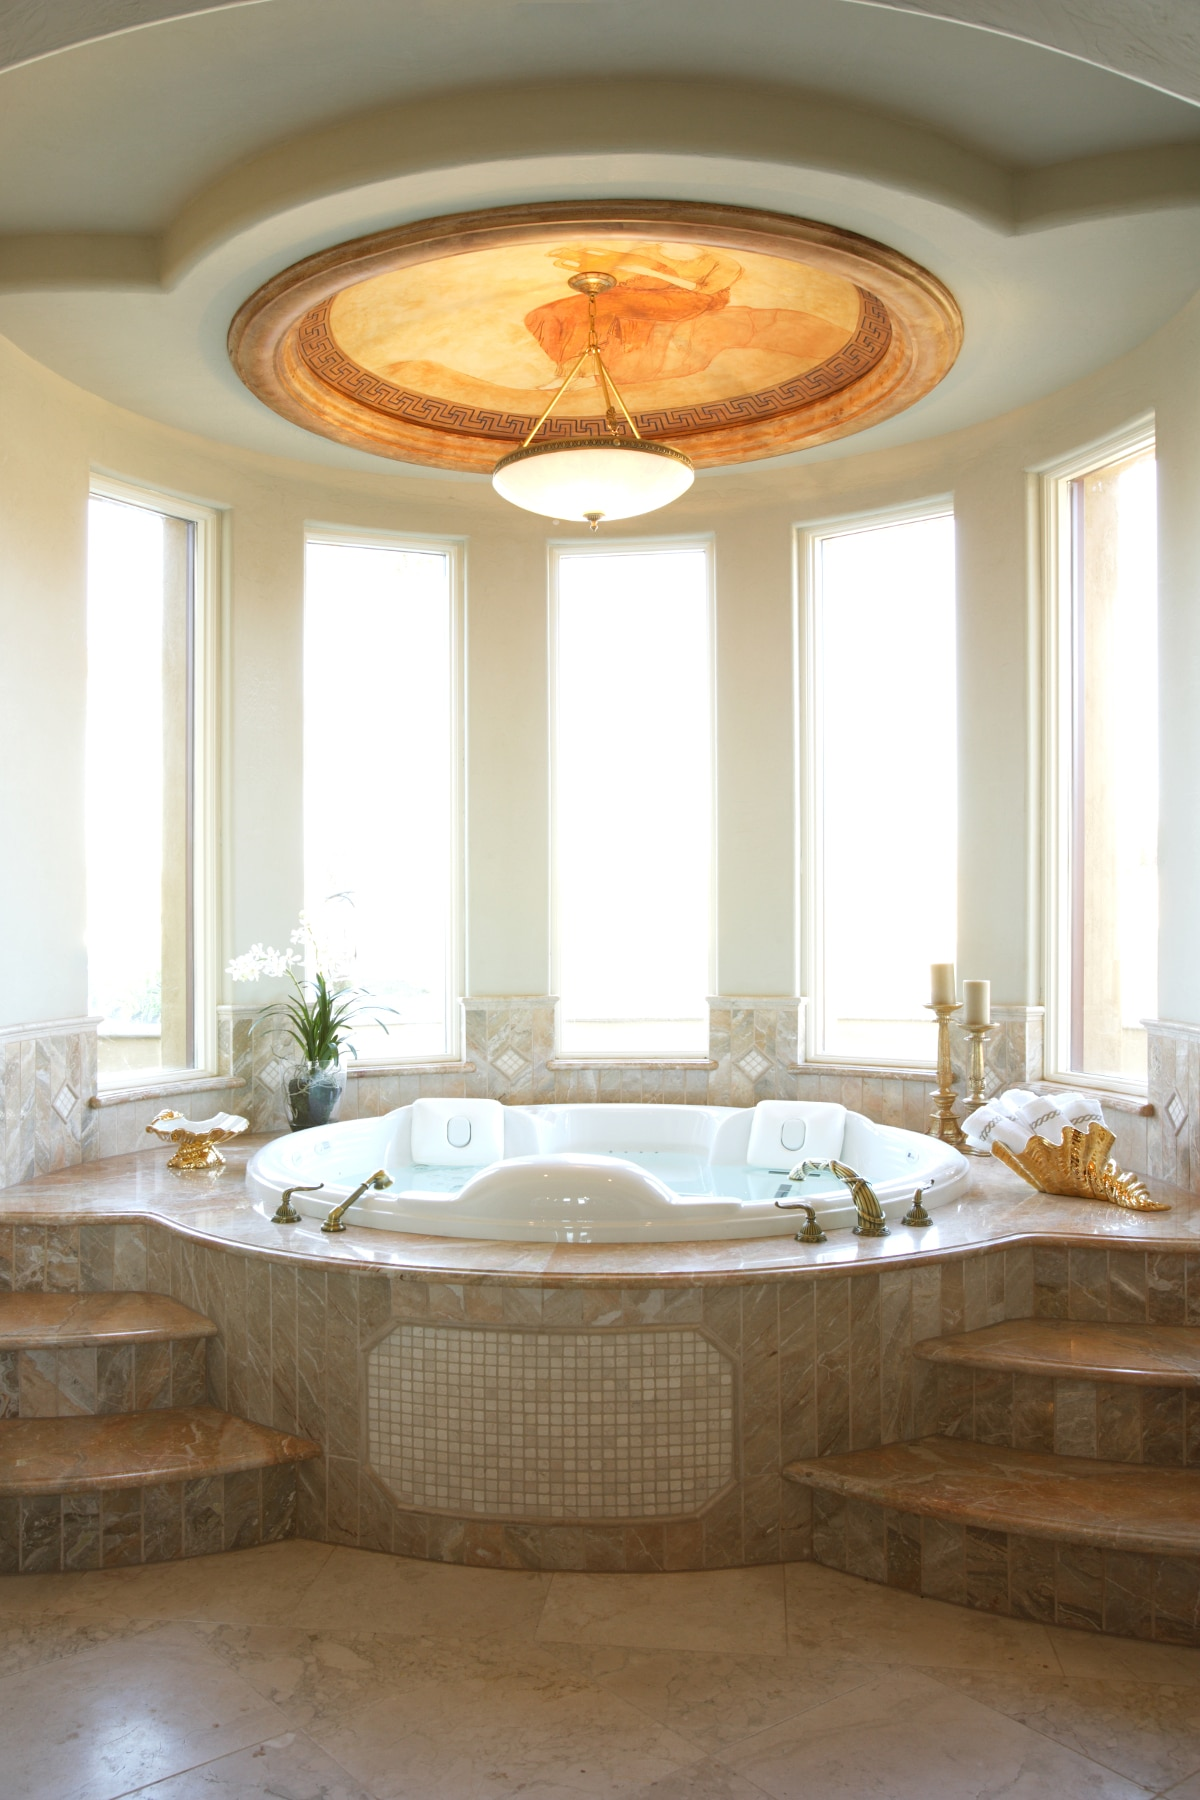 Bathrooms that beckon living magazine for How to decorate a garden tub bathroom